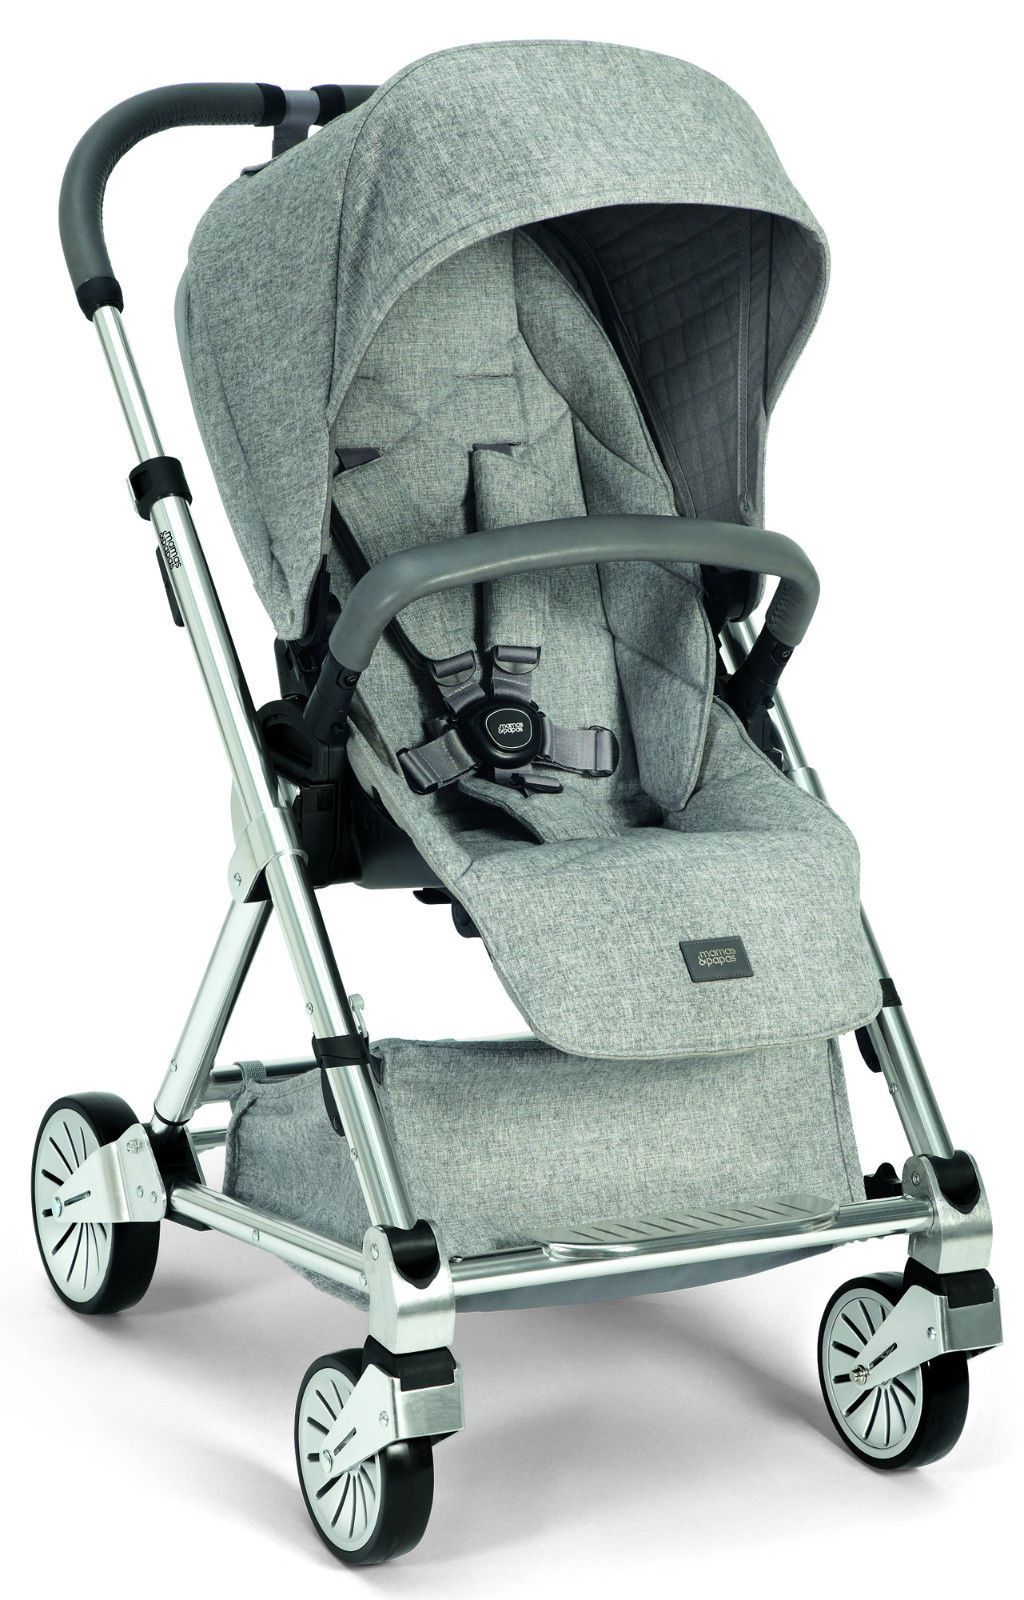 Mamas & Papas Urbo 2 Compact Reversible Seat Baby Single